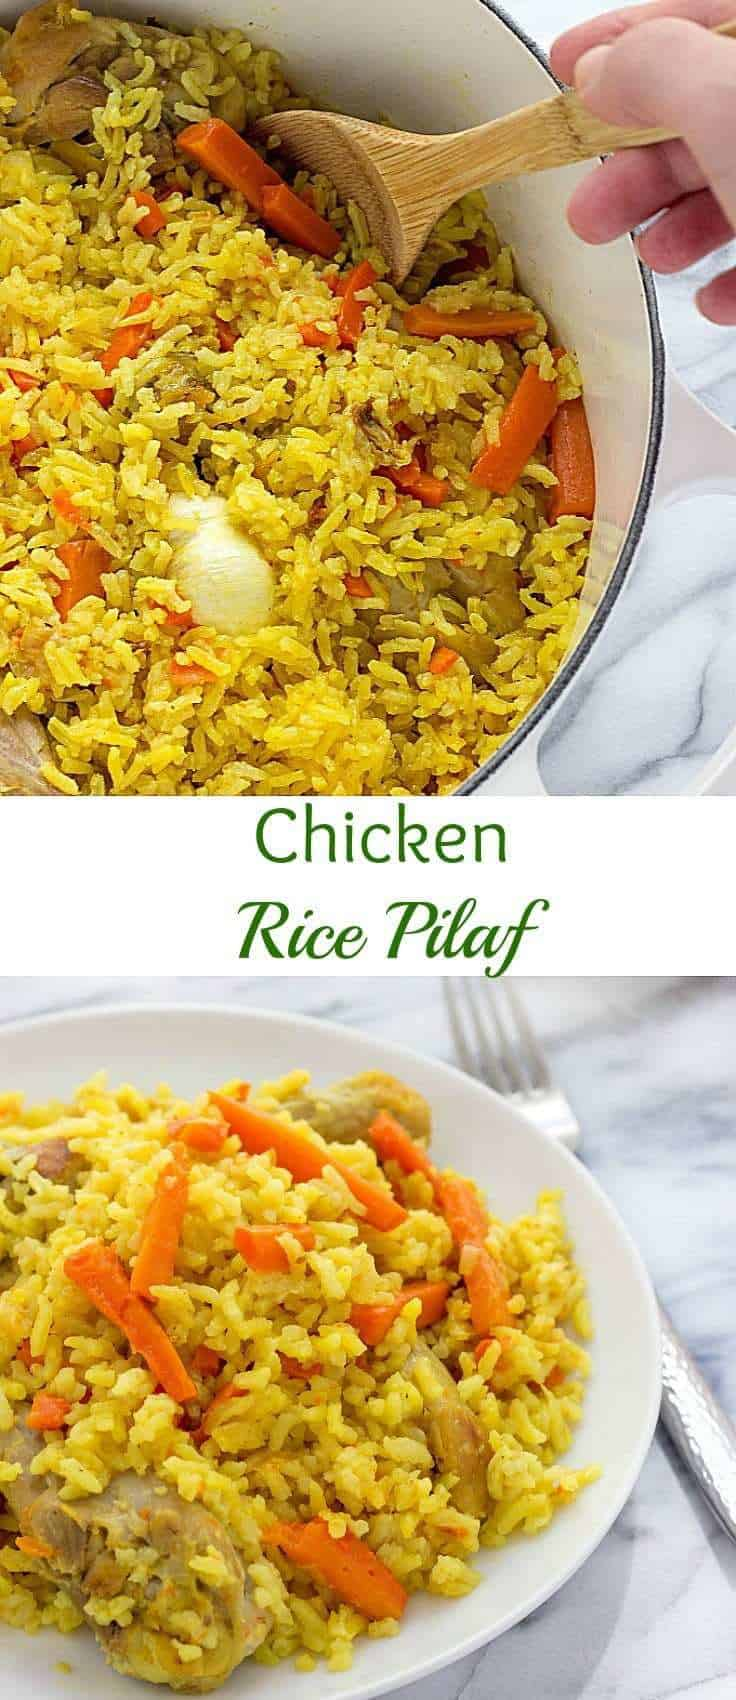 chicken rice pilaf | rice pilaf | chicken pilaf recipe | healthy rice pilaf | rice recipes